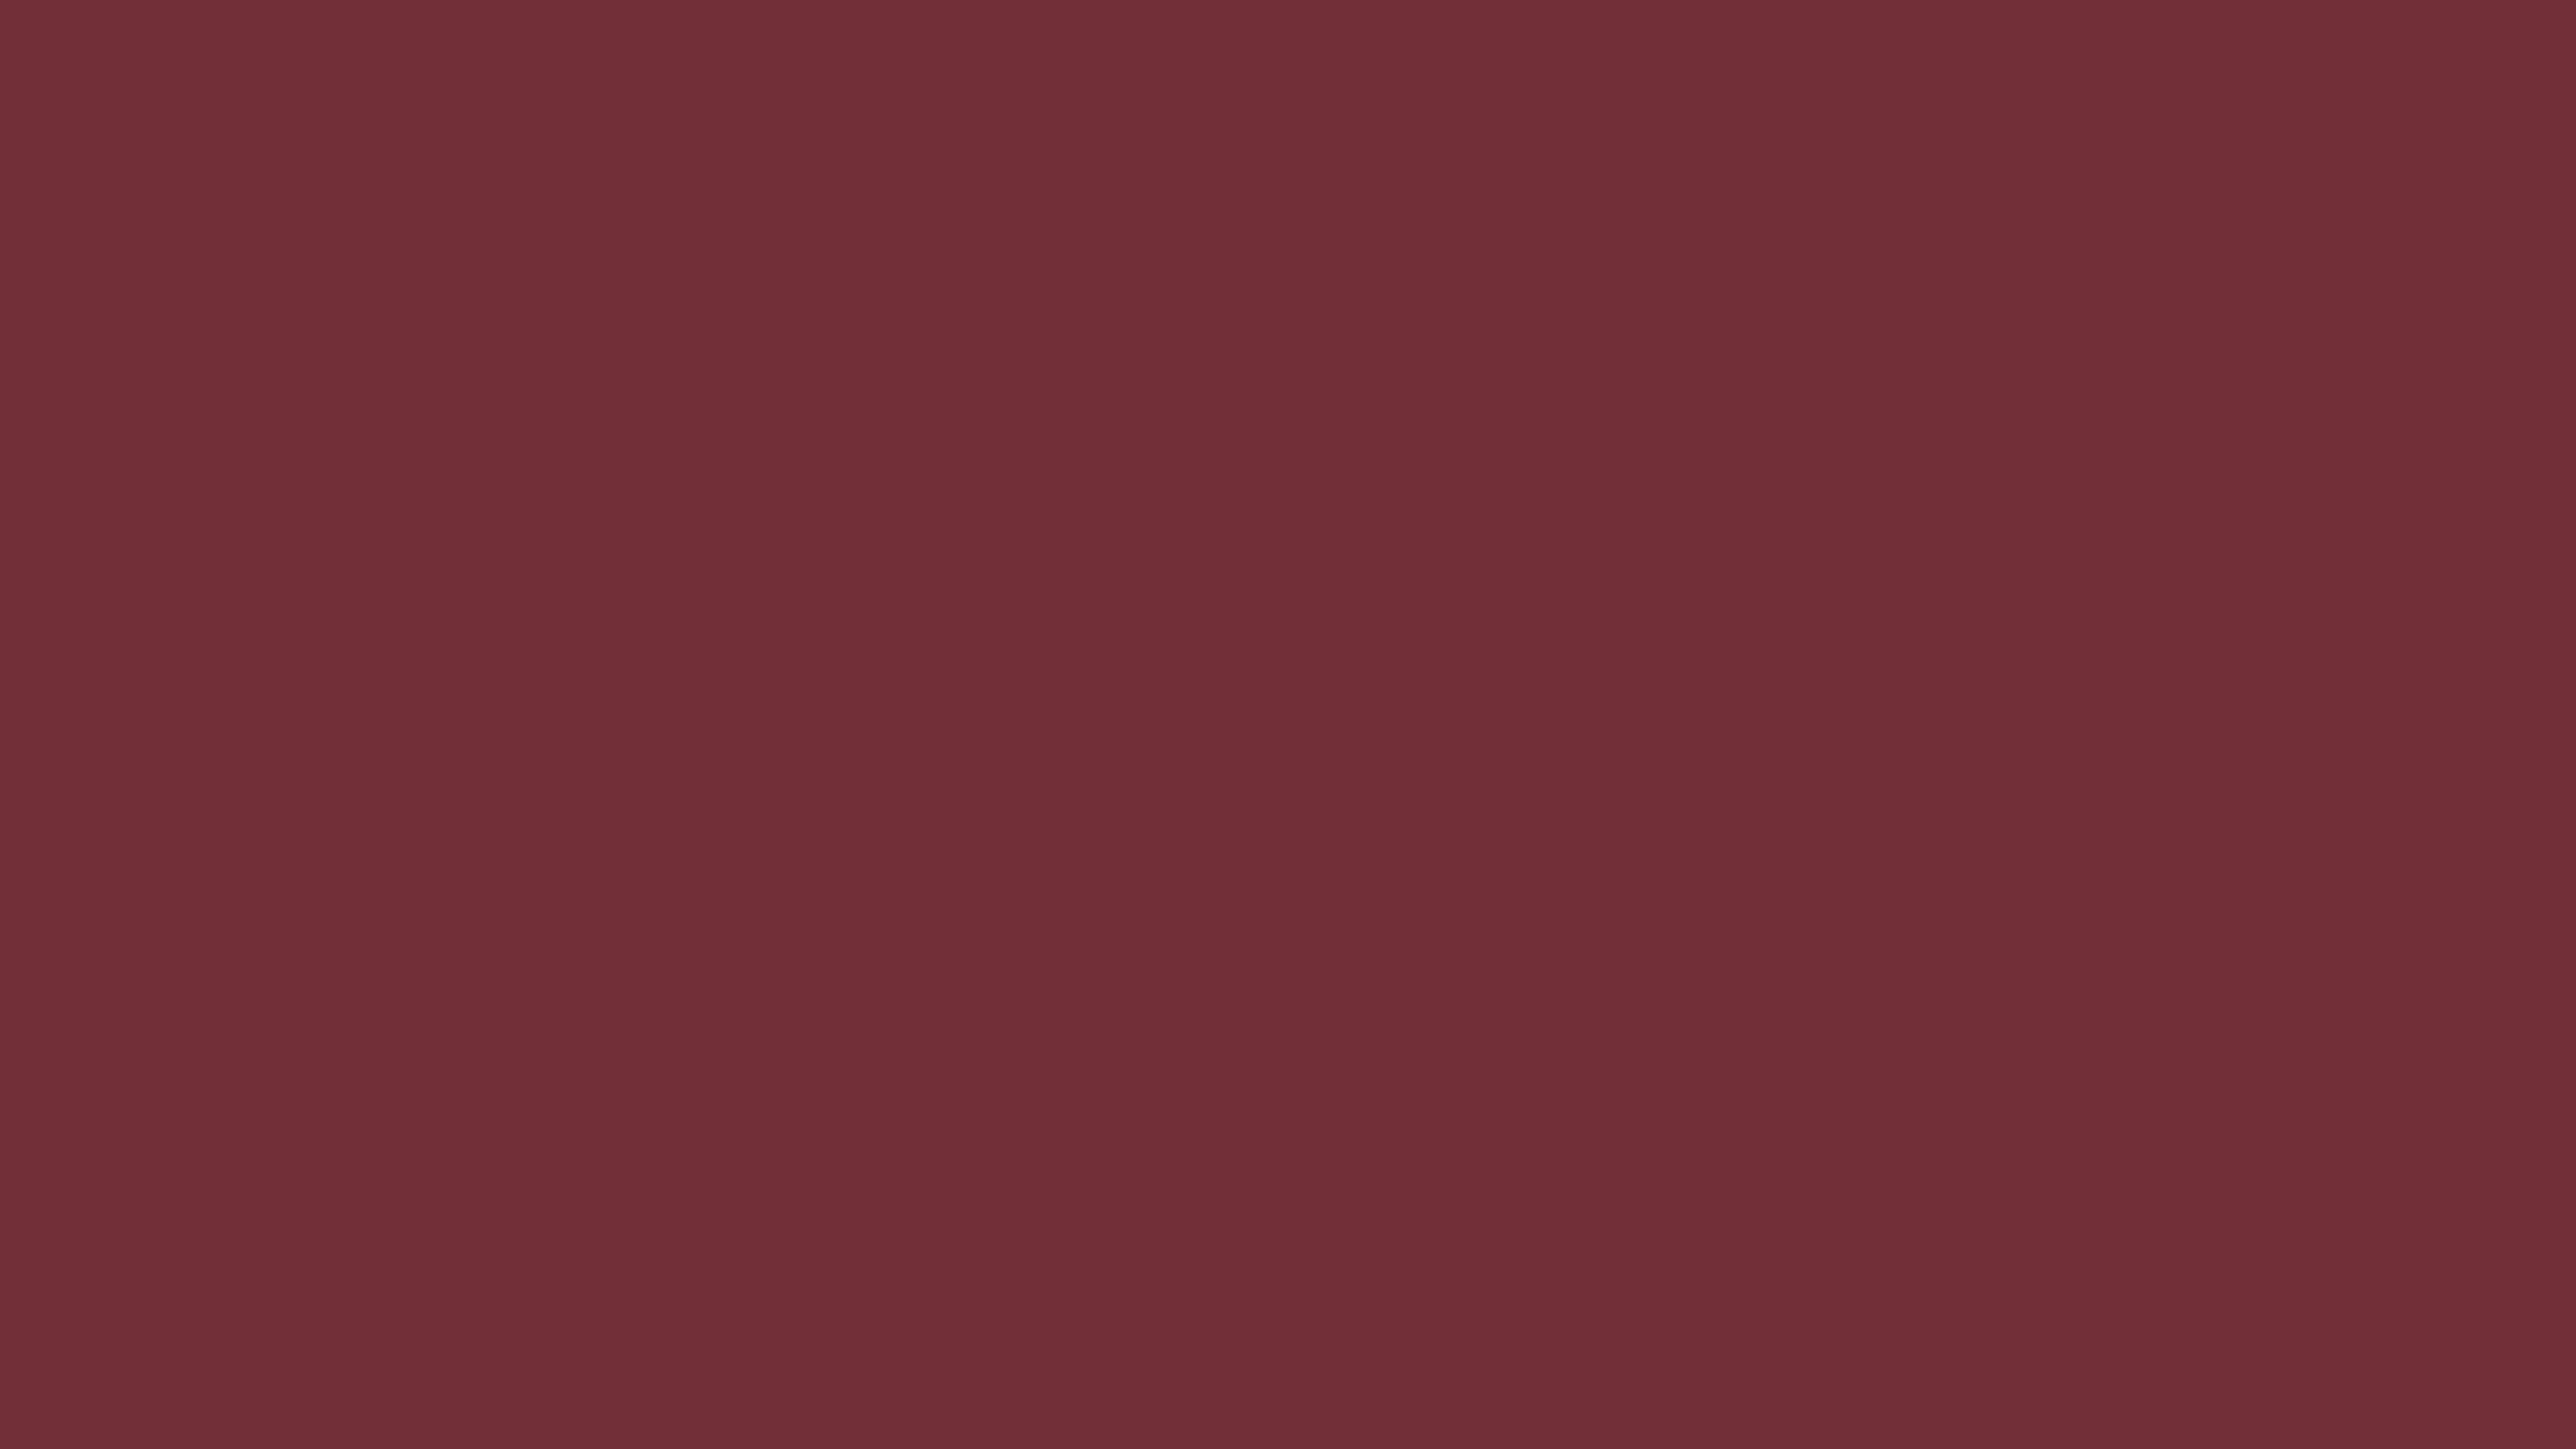 5120x2880 Wine Solid Color Background